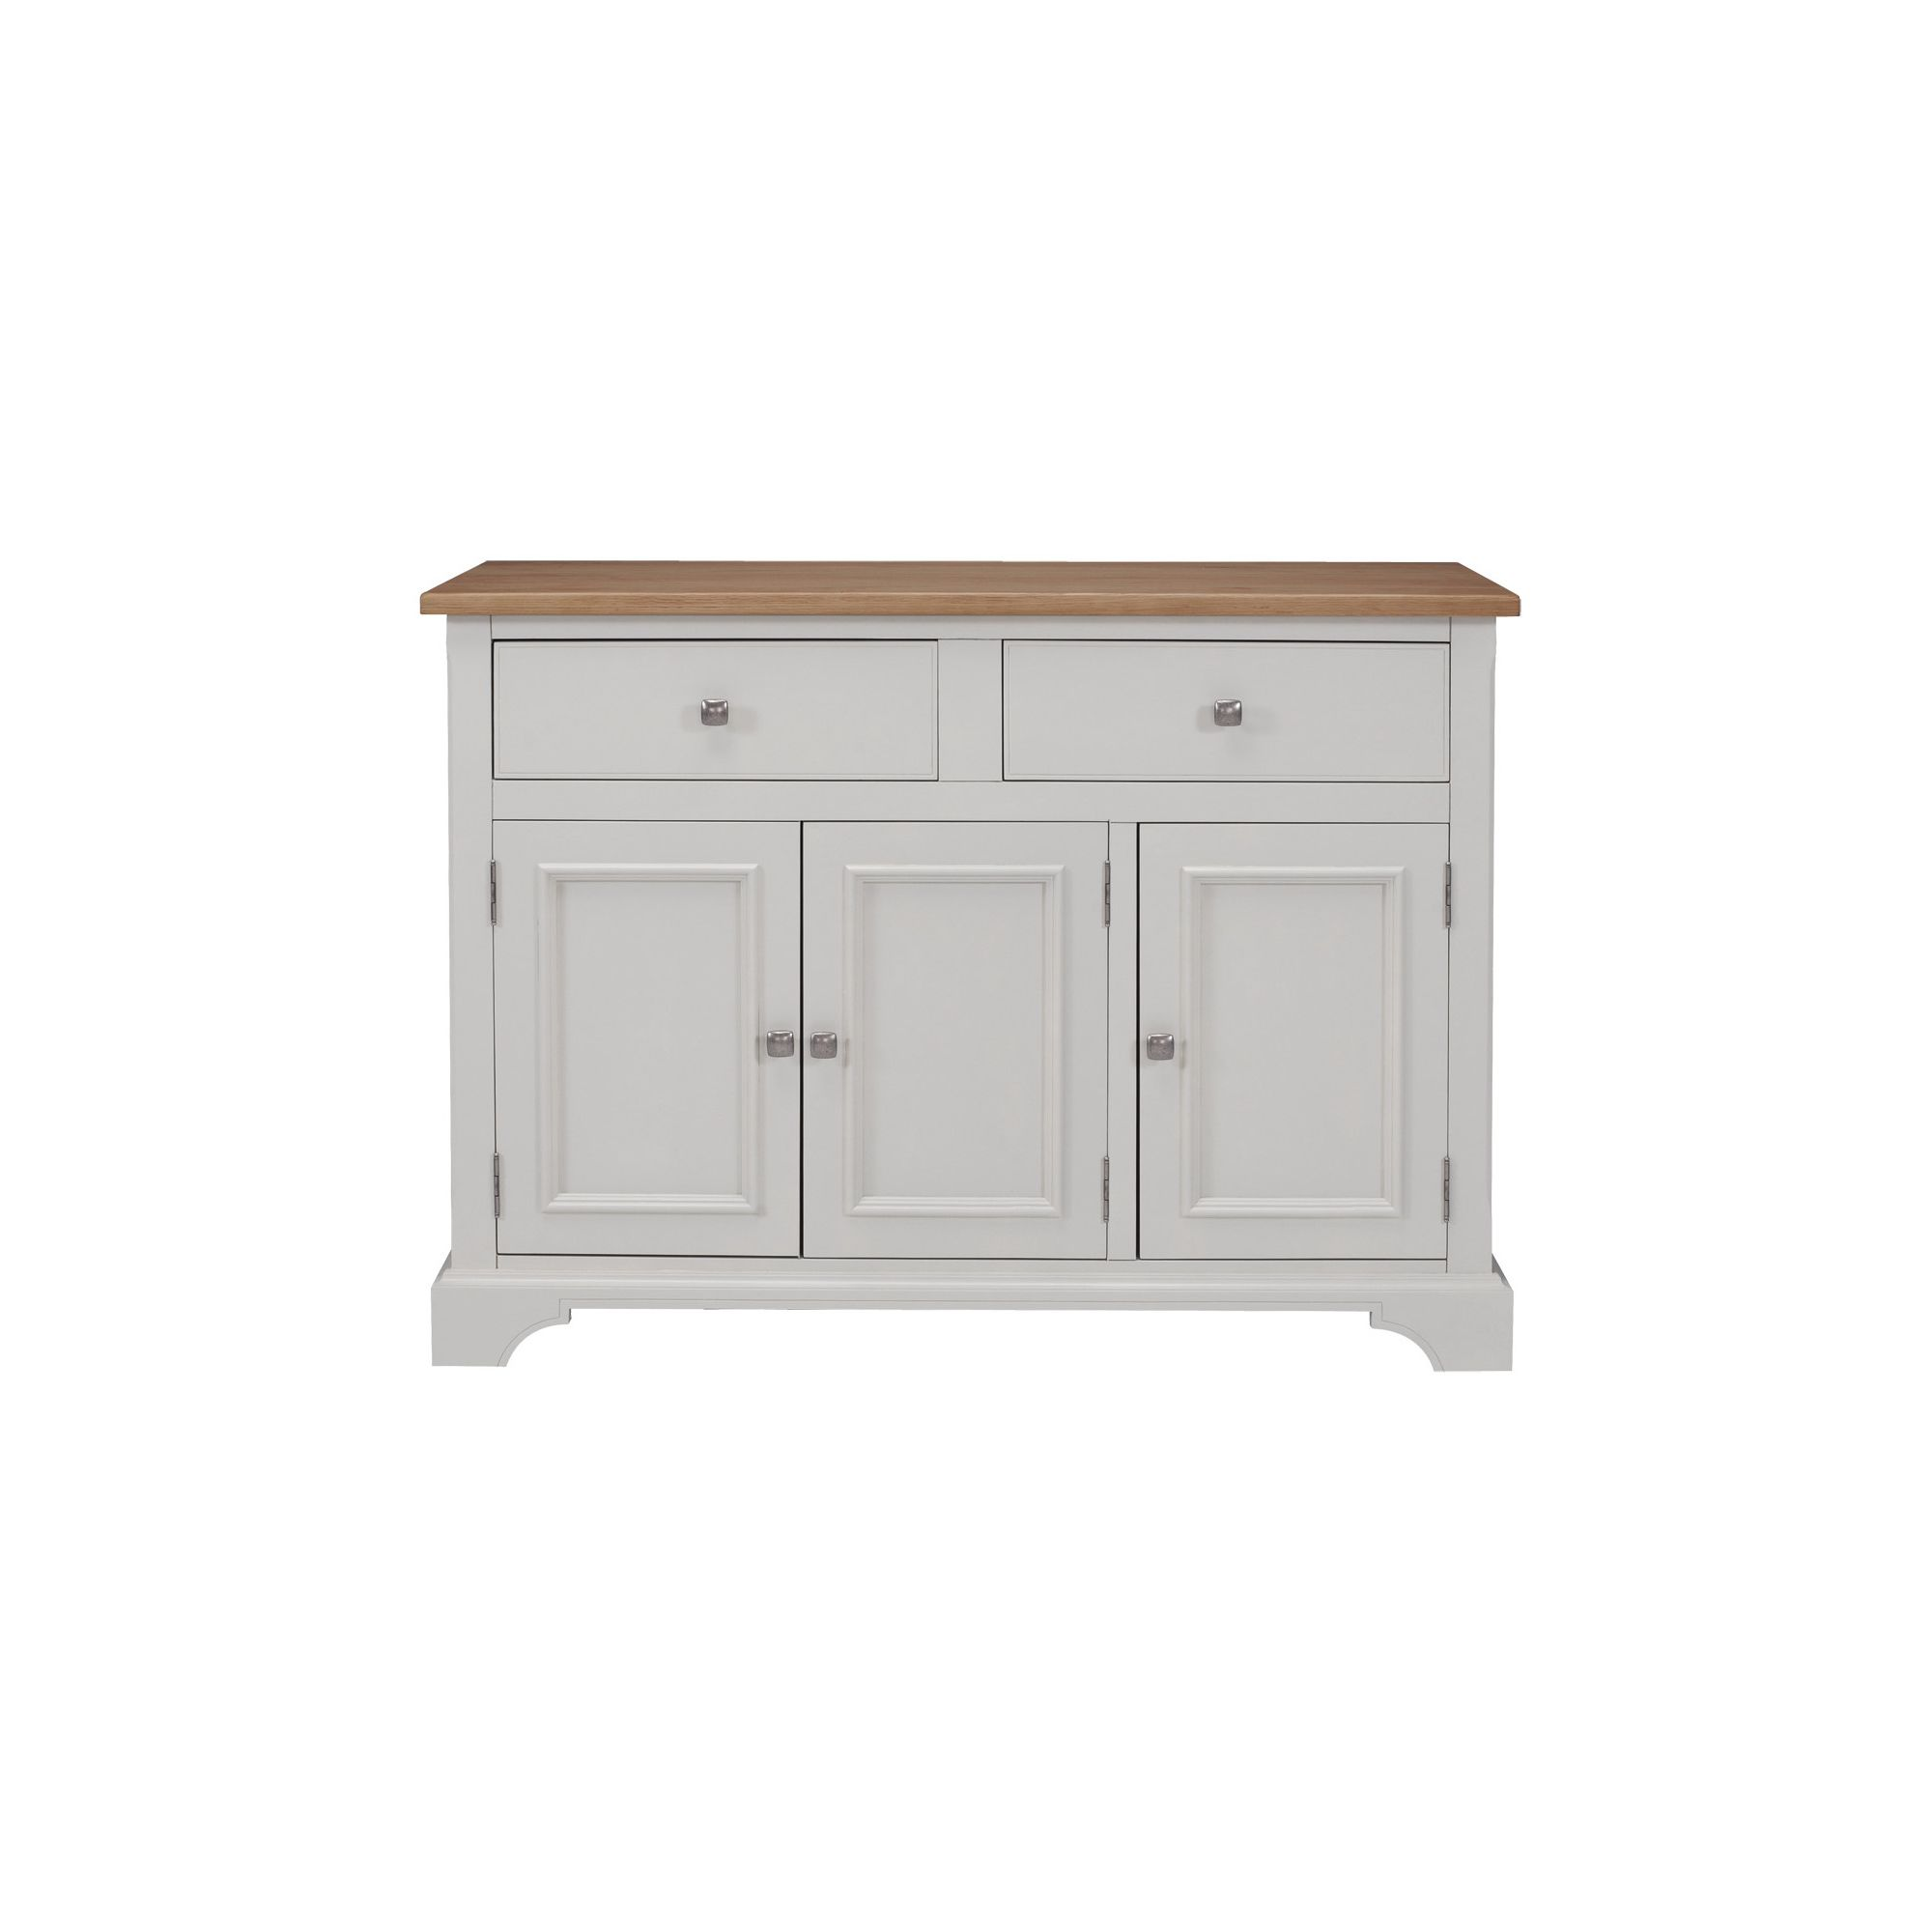 Thorndon Highgrove Dining 3 Door Sideboard at Tesco Direct